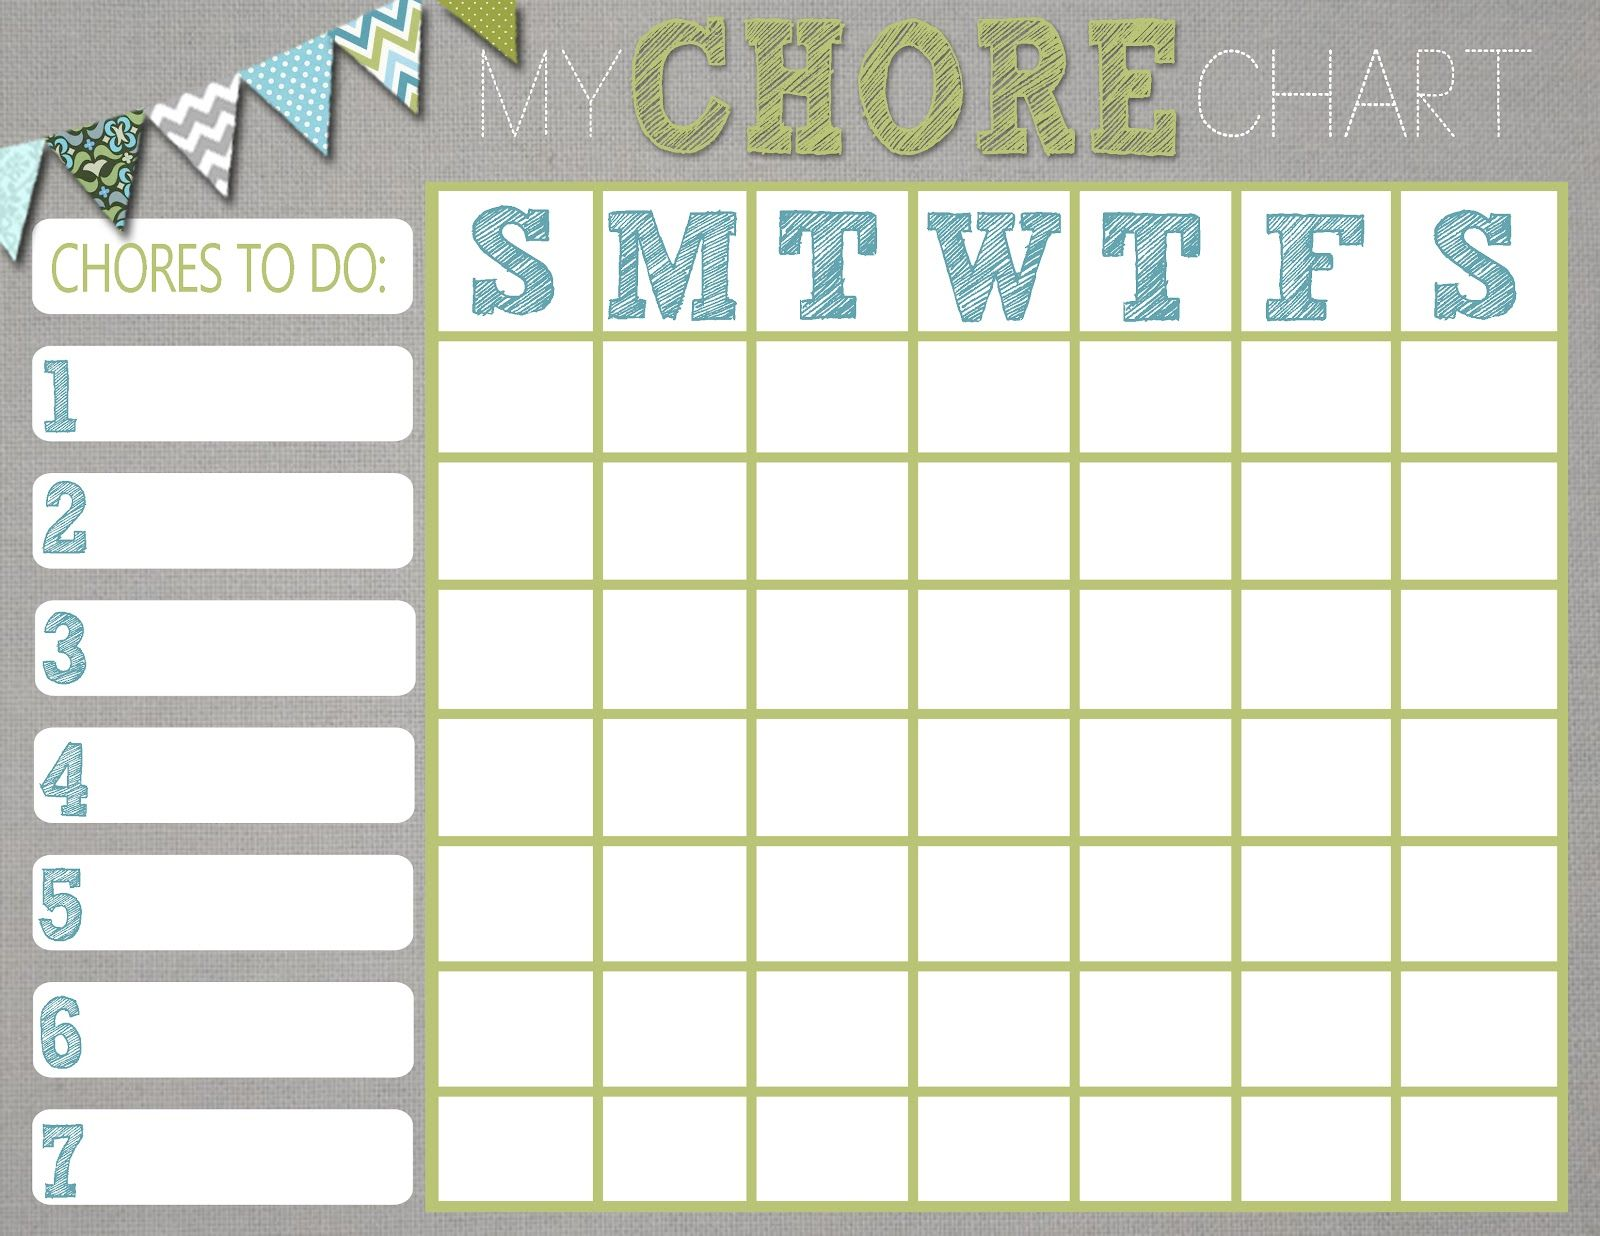 How to Make Chore Charts